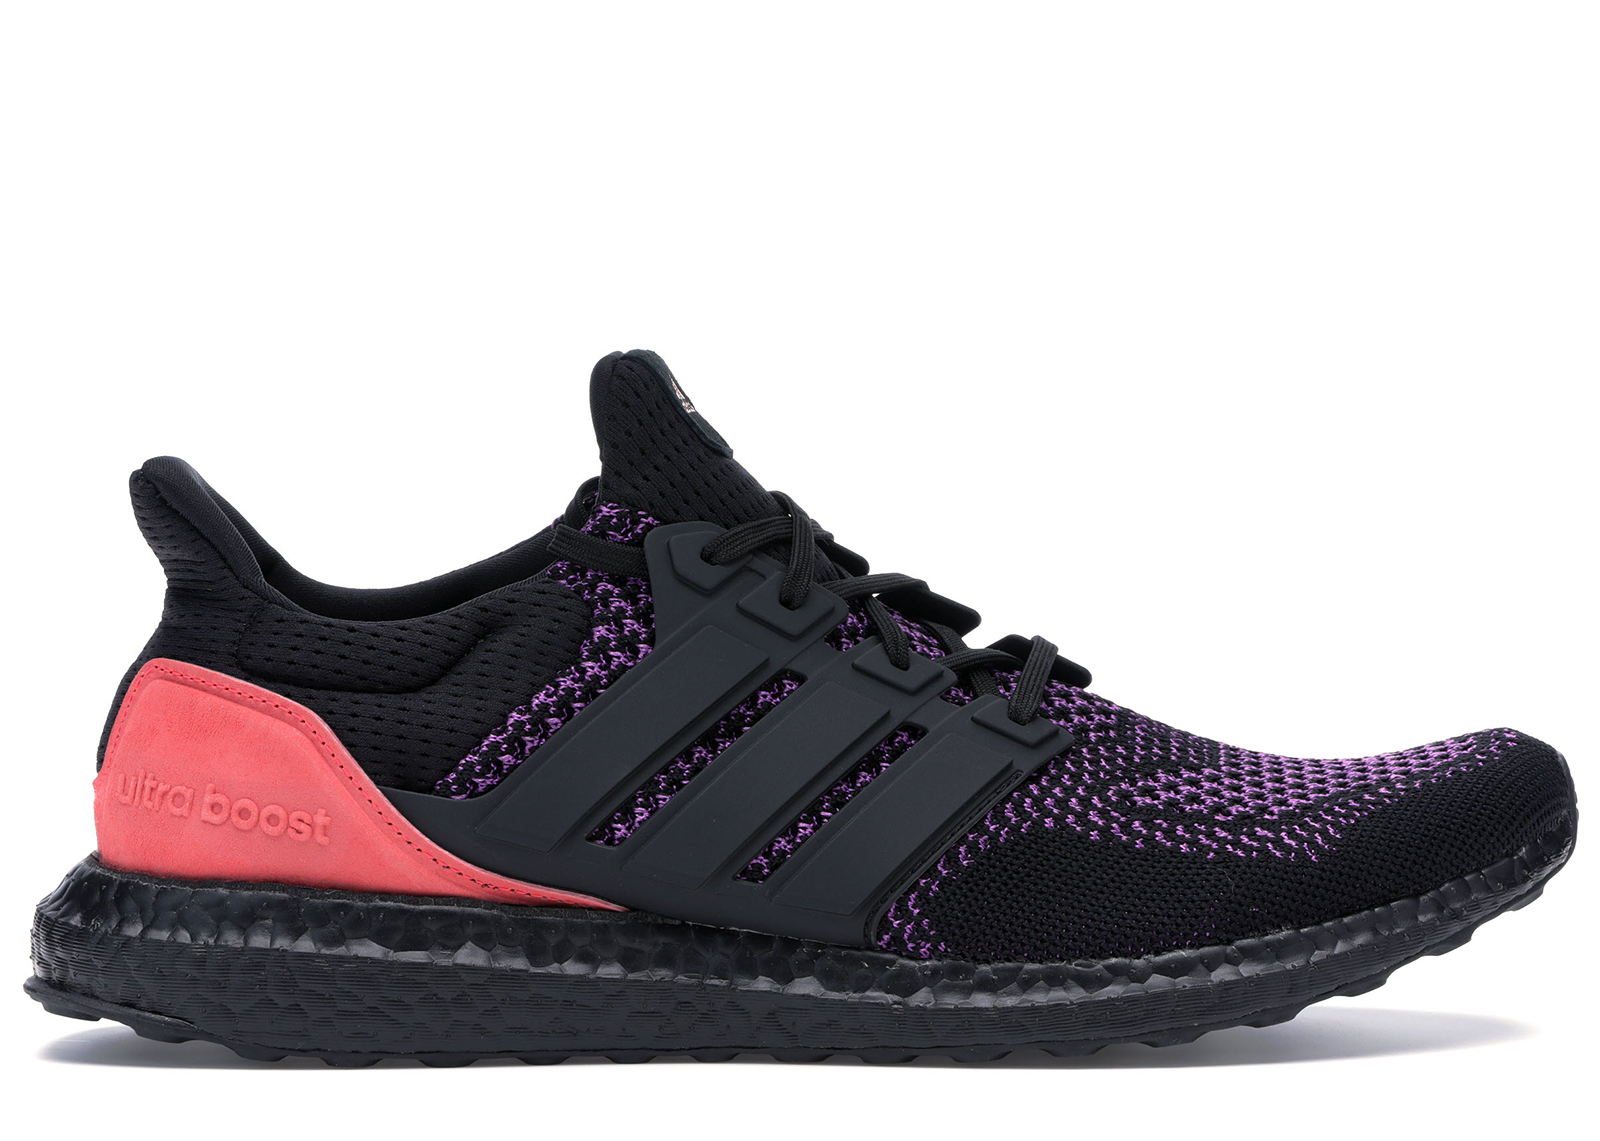 Cheap Men's Adidas Ultra Boost X Yeezy Boost Black Red